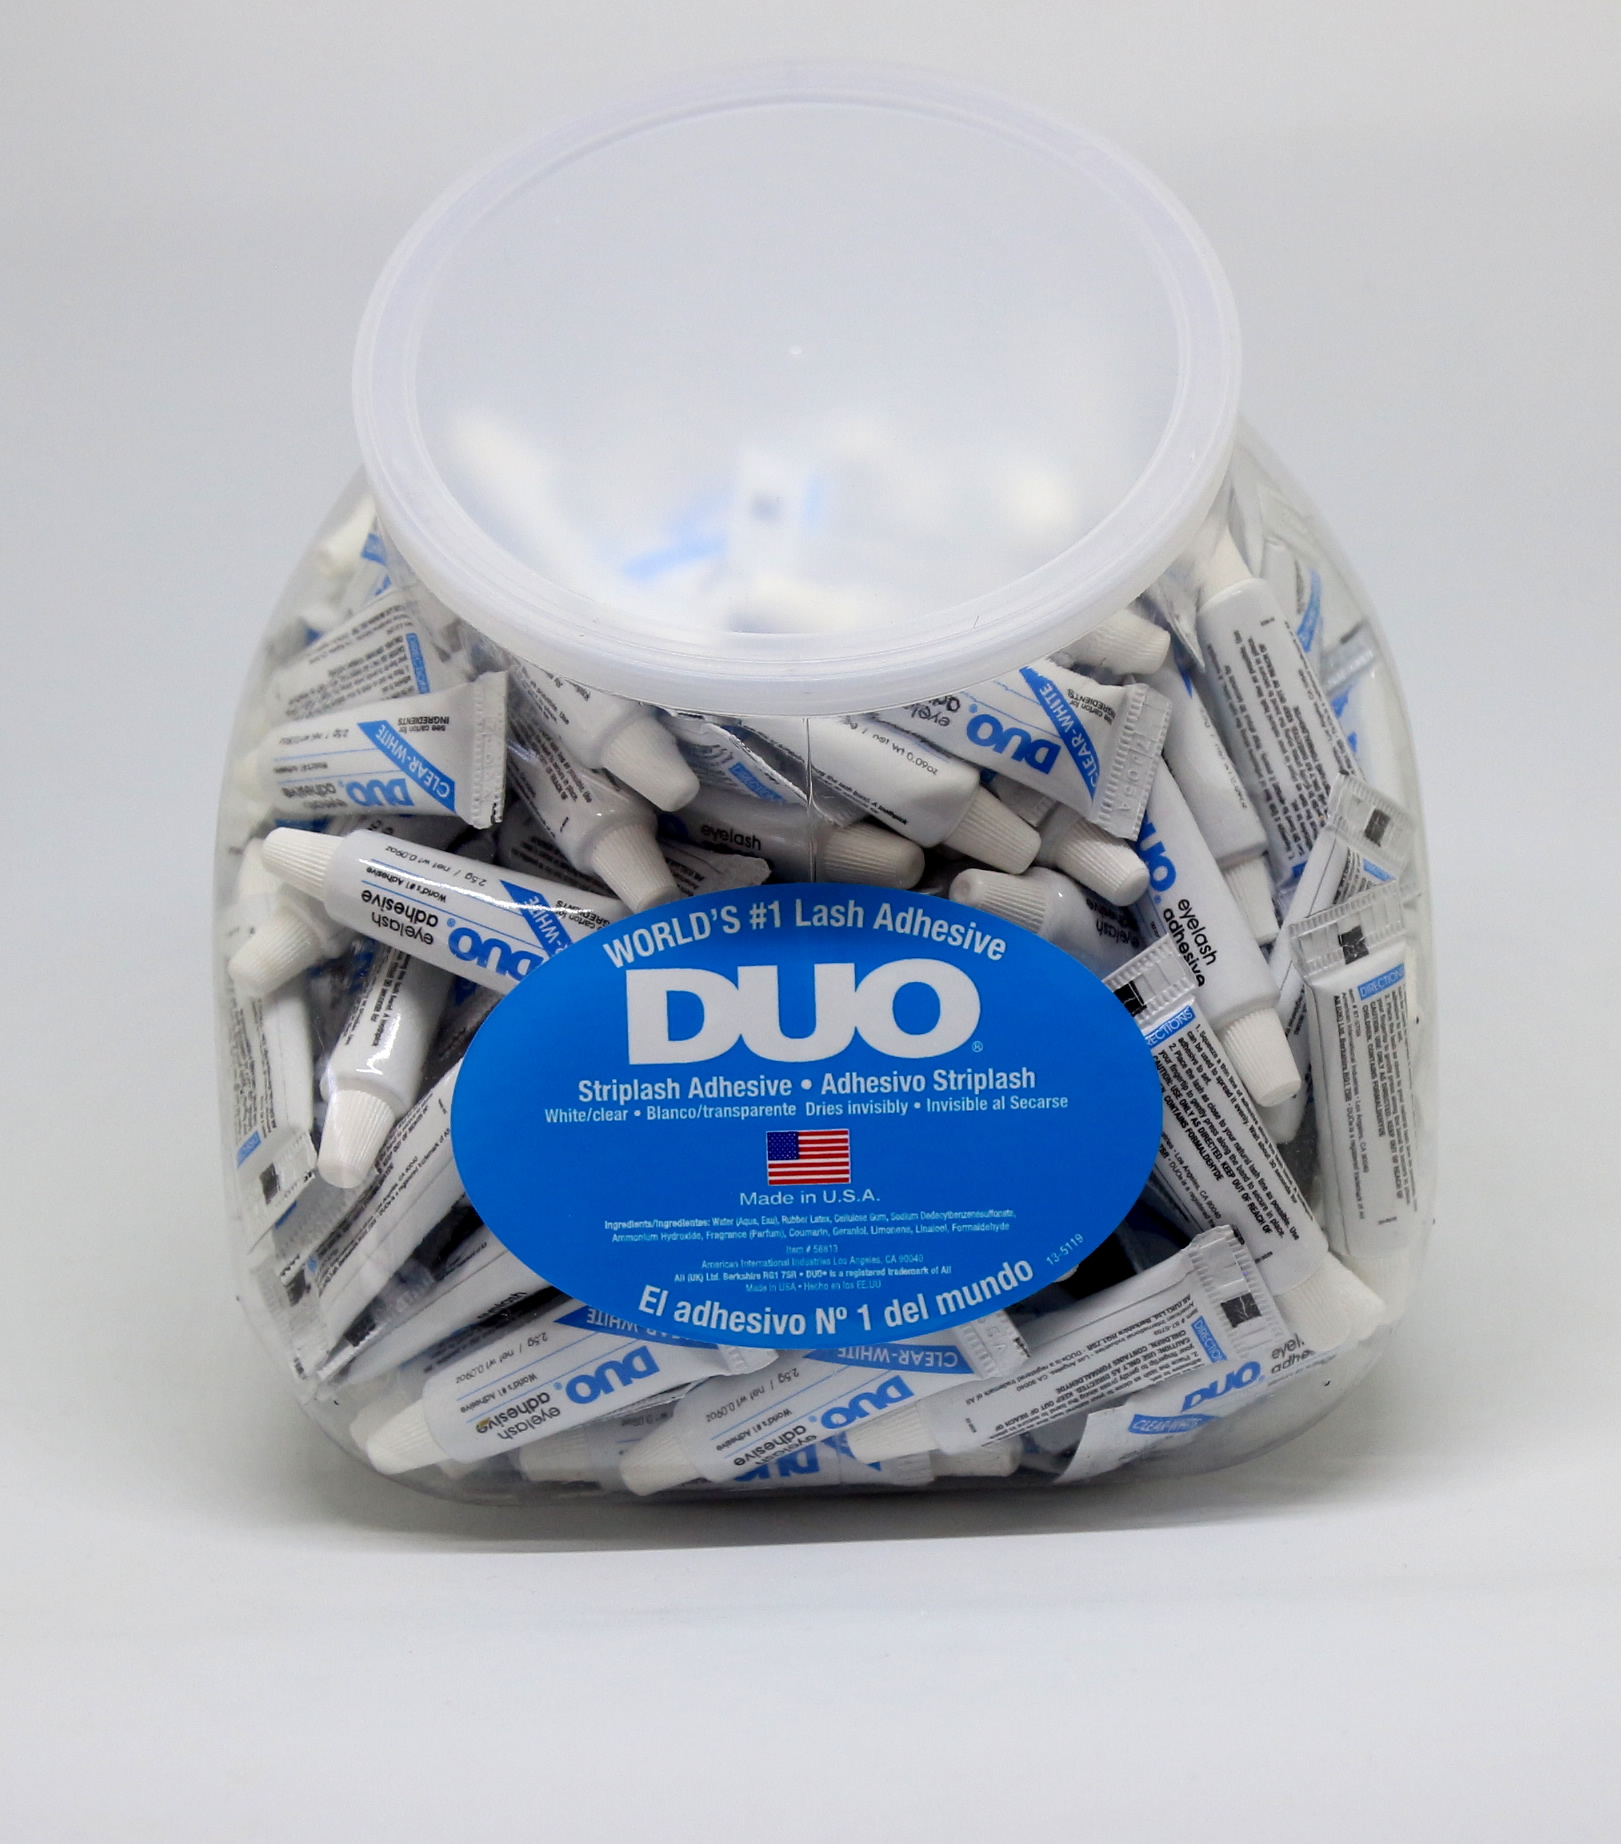 DUO Eyelash Adhesive 0.09oz Clear Fish Bowl